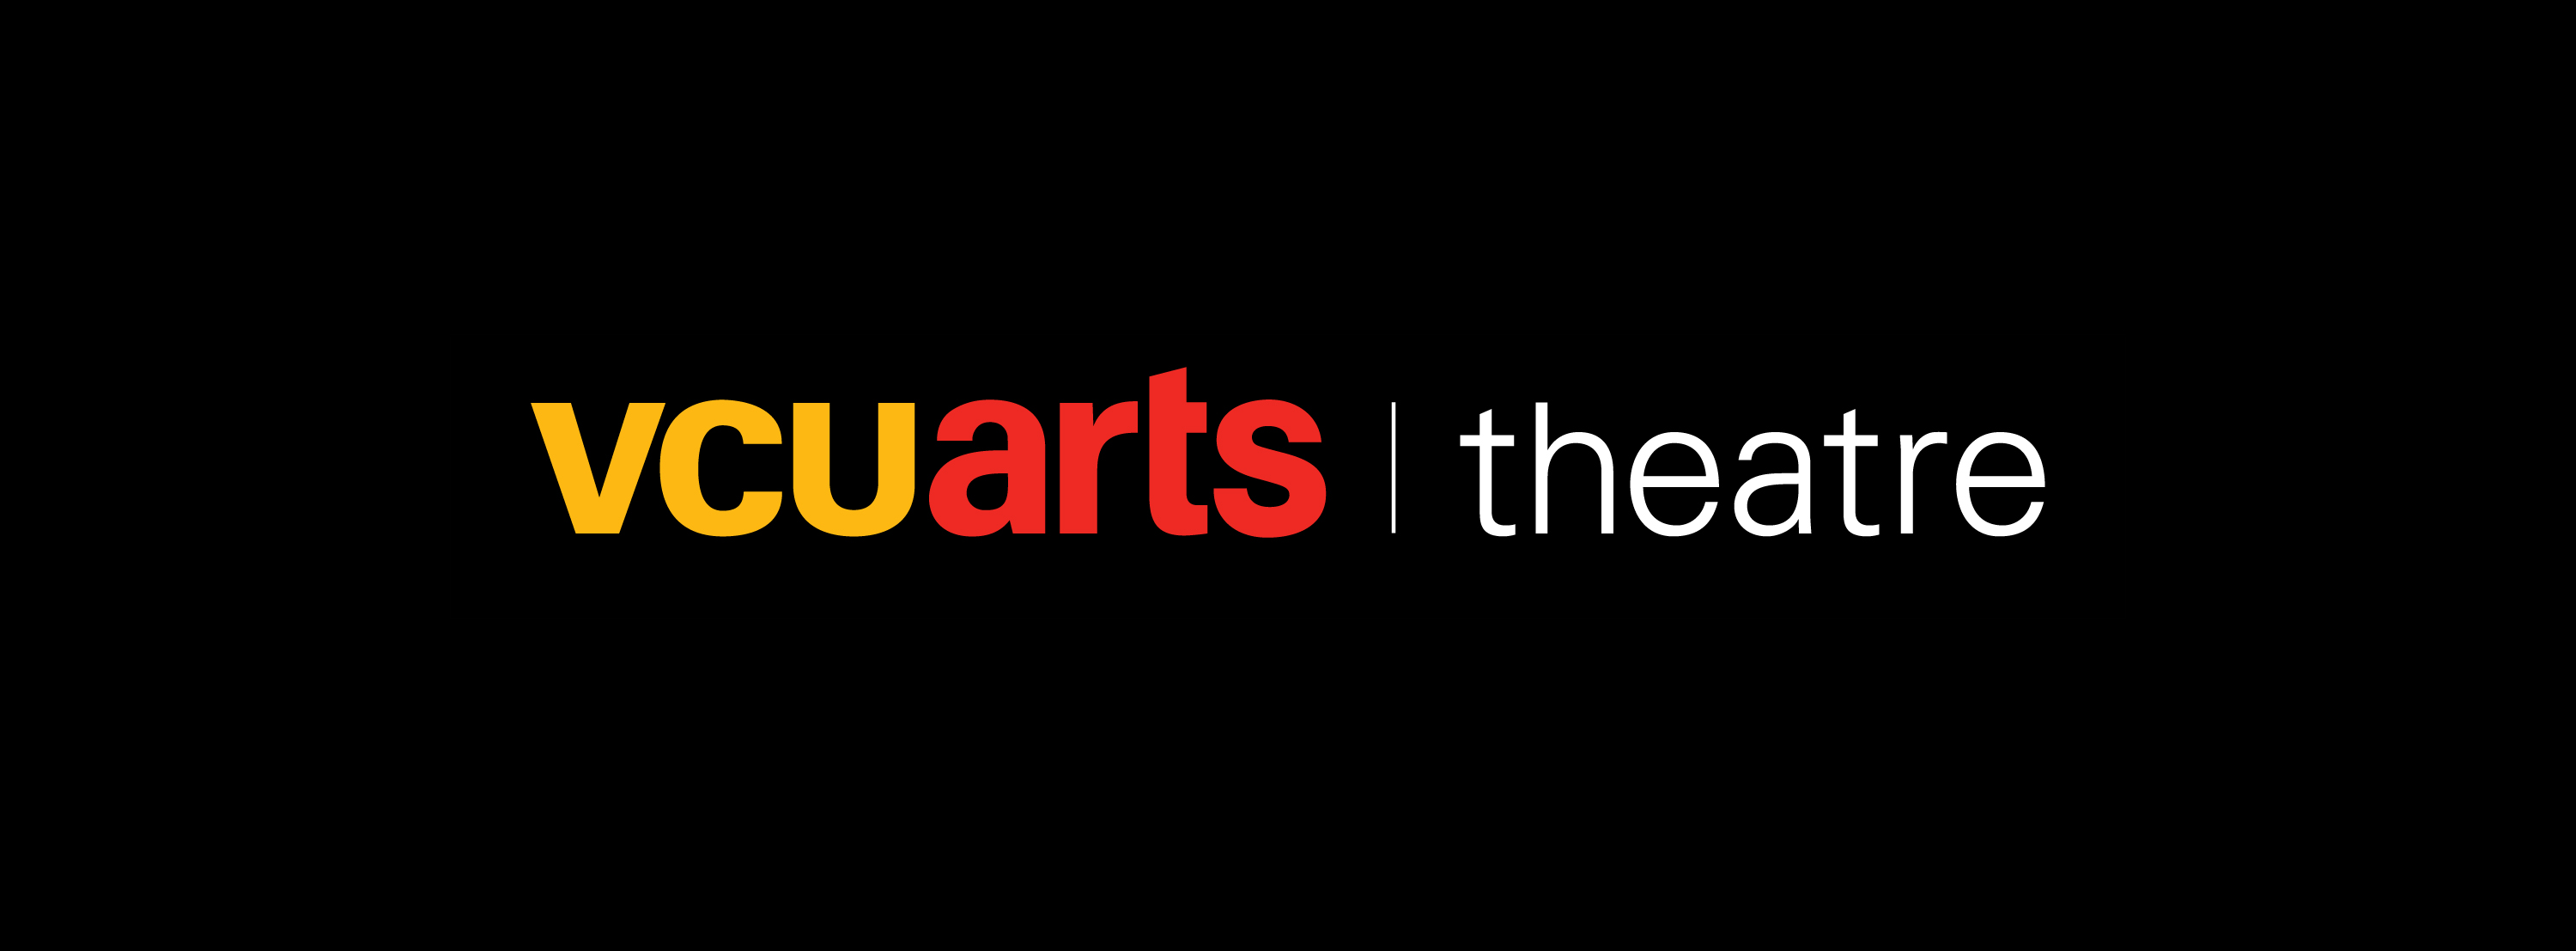 Find tickets from VCU- School of Arts: Department of Theatre